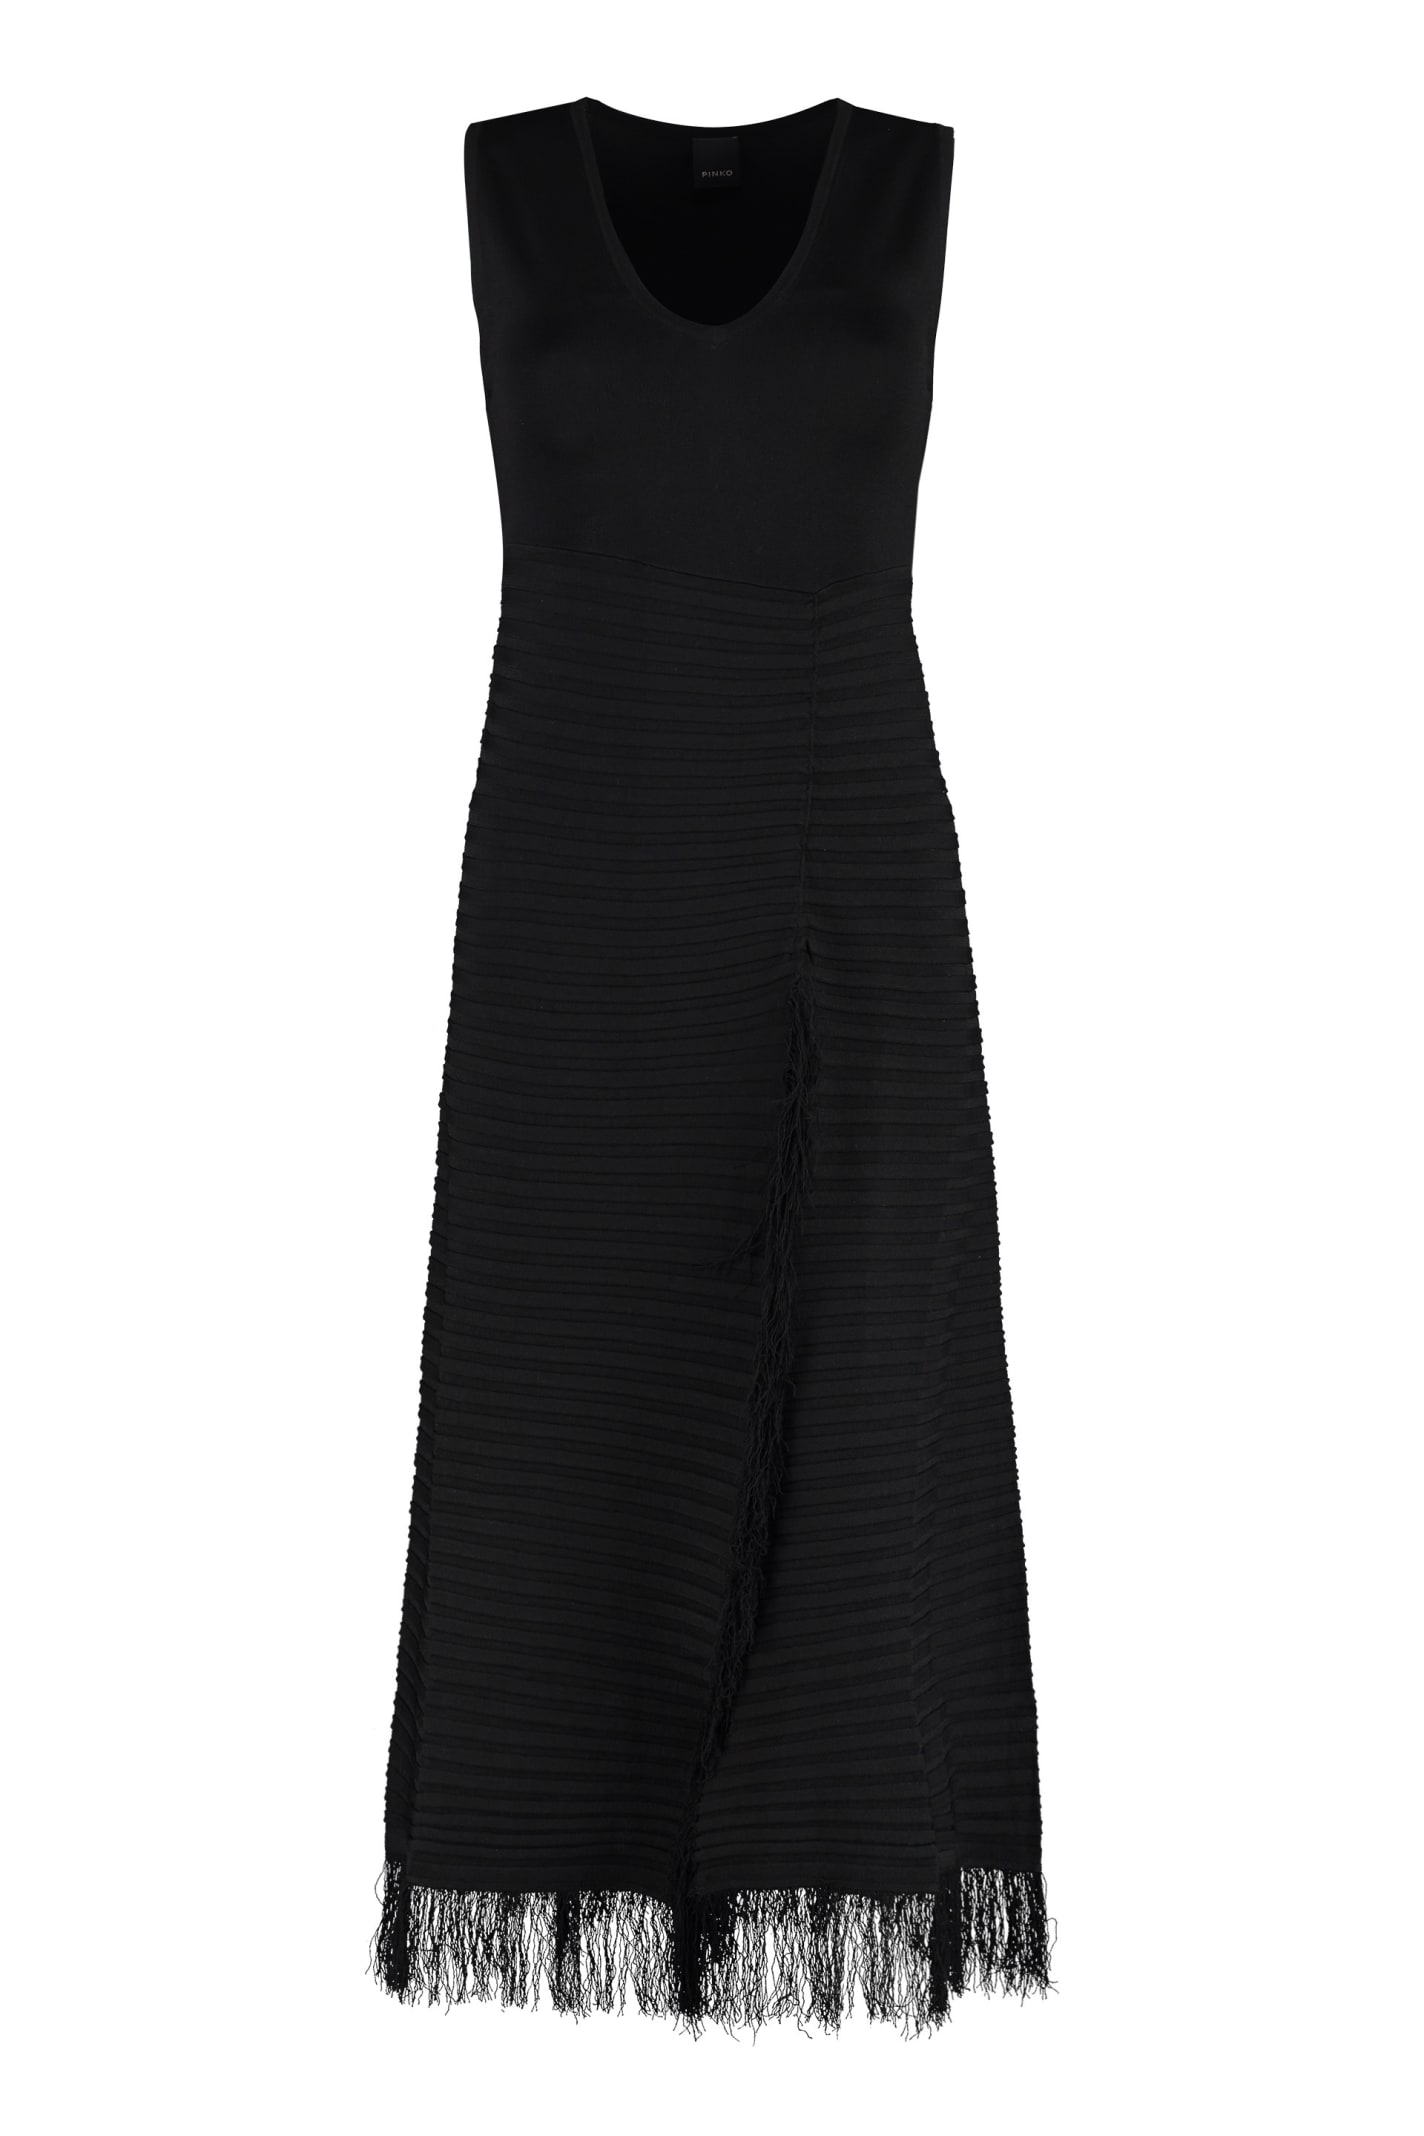 Pinko Sprint Knitted Dress